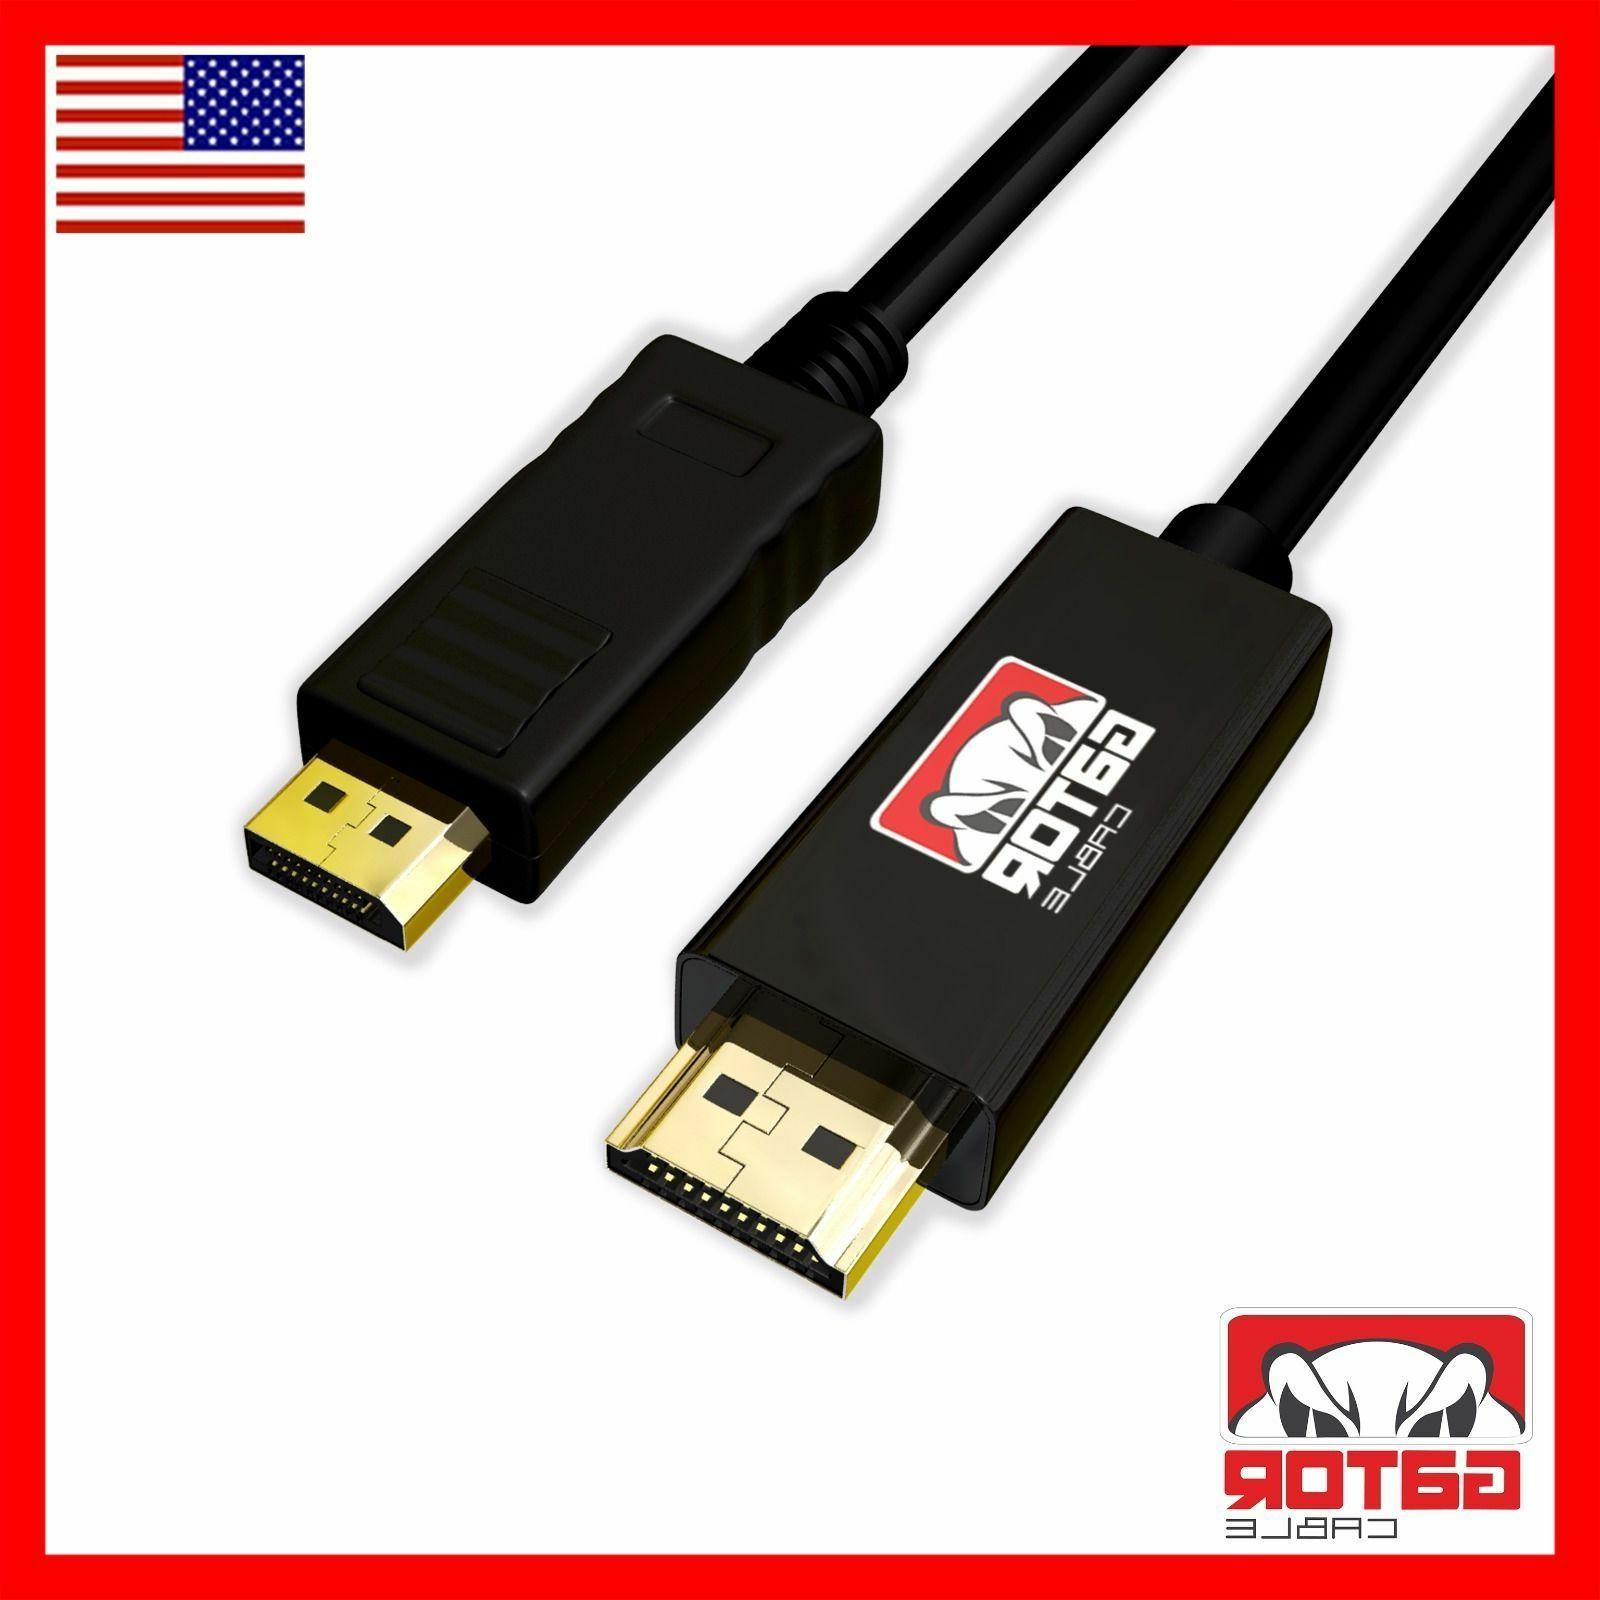 Display Cable Audio to HDMI Cable 6FT